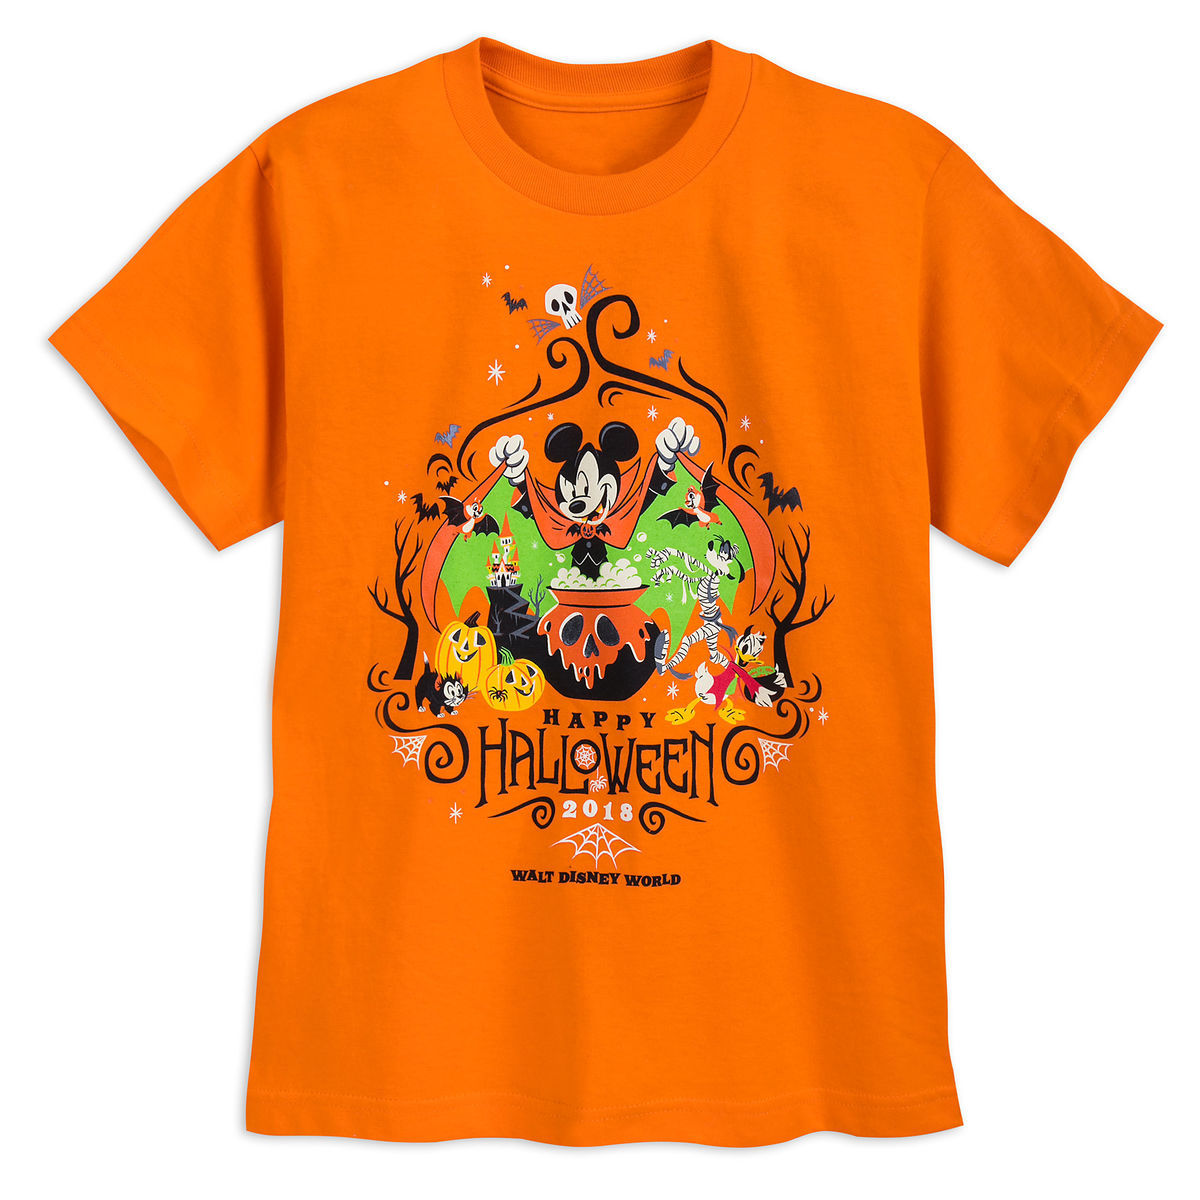 87708e4f2 Disney T-Shirt for Boys - 2018 Halloween - Mickey and Friends - Orange